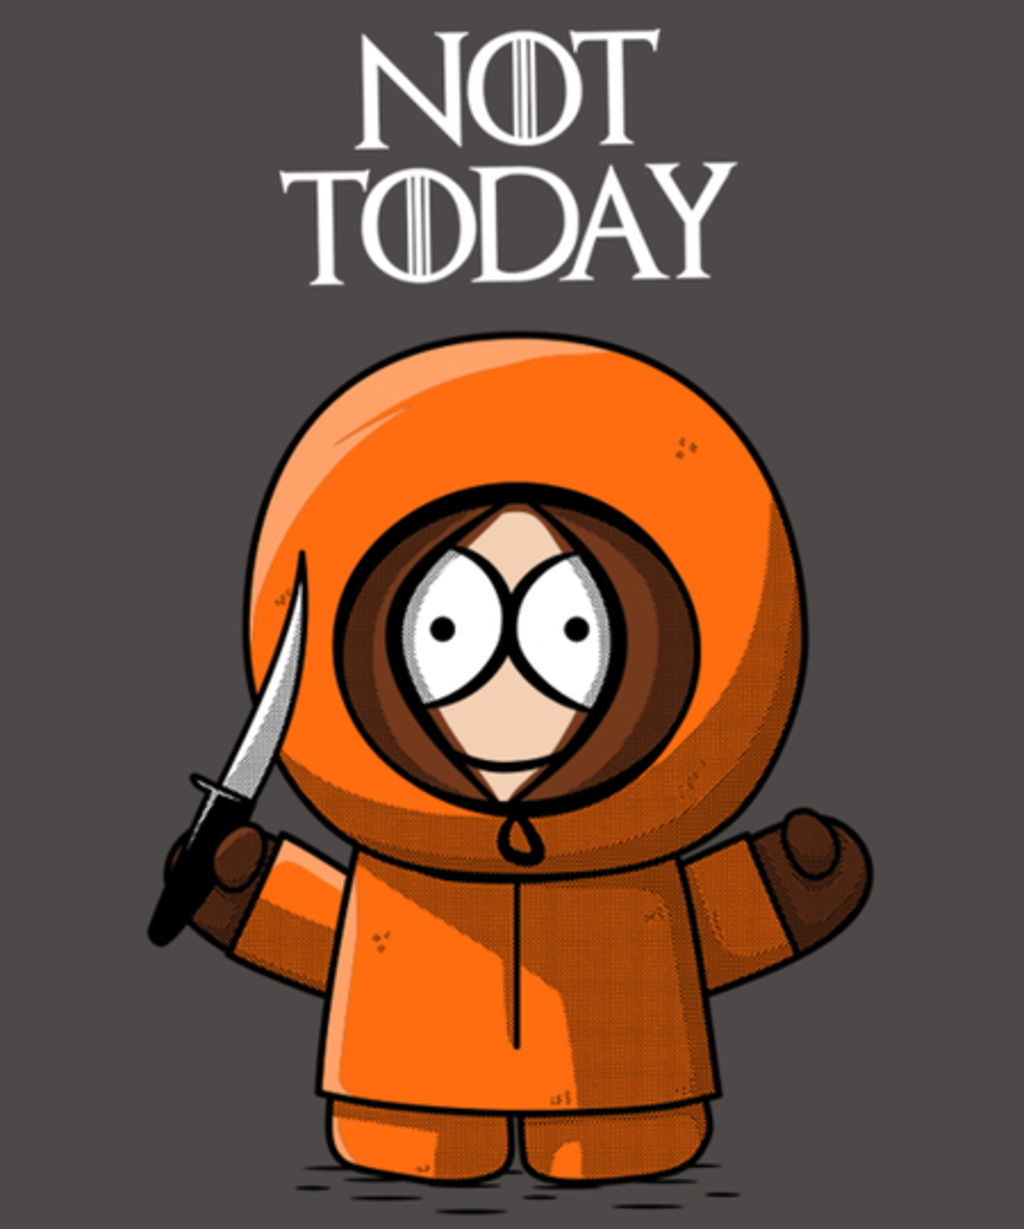 Qwertee: Sorry, not today!